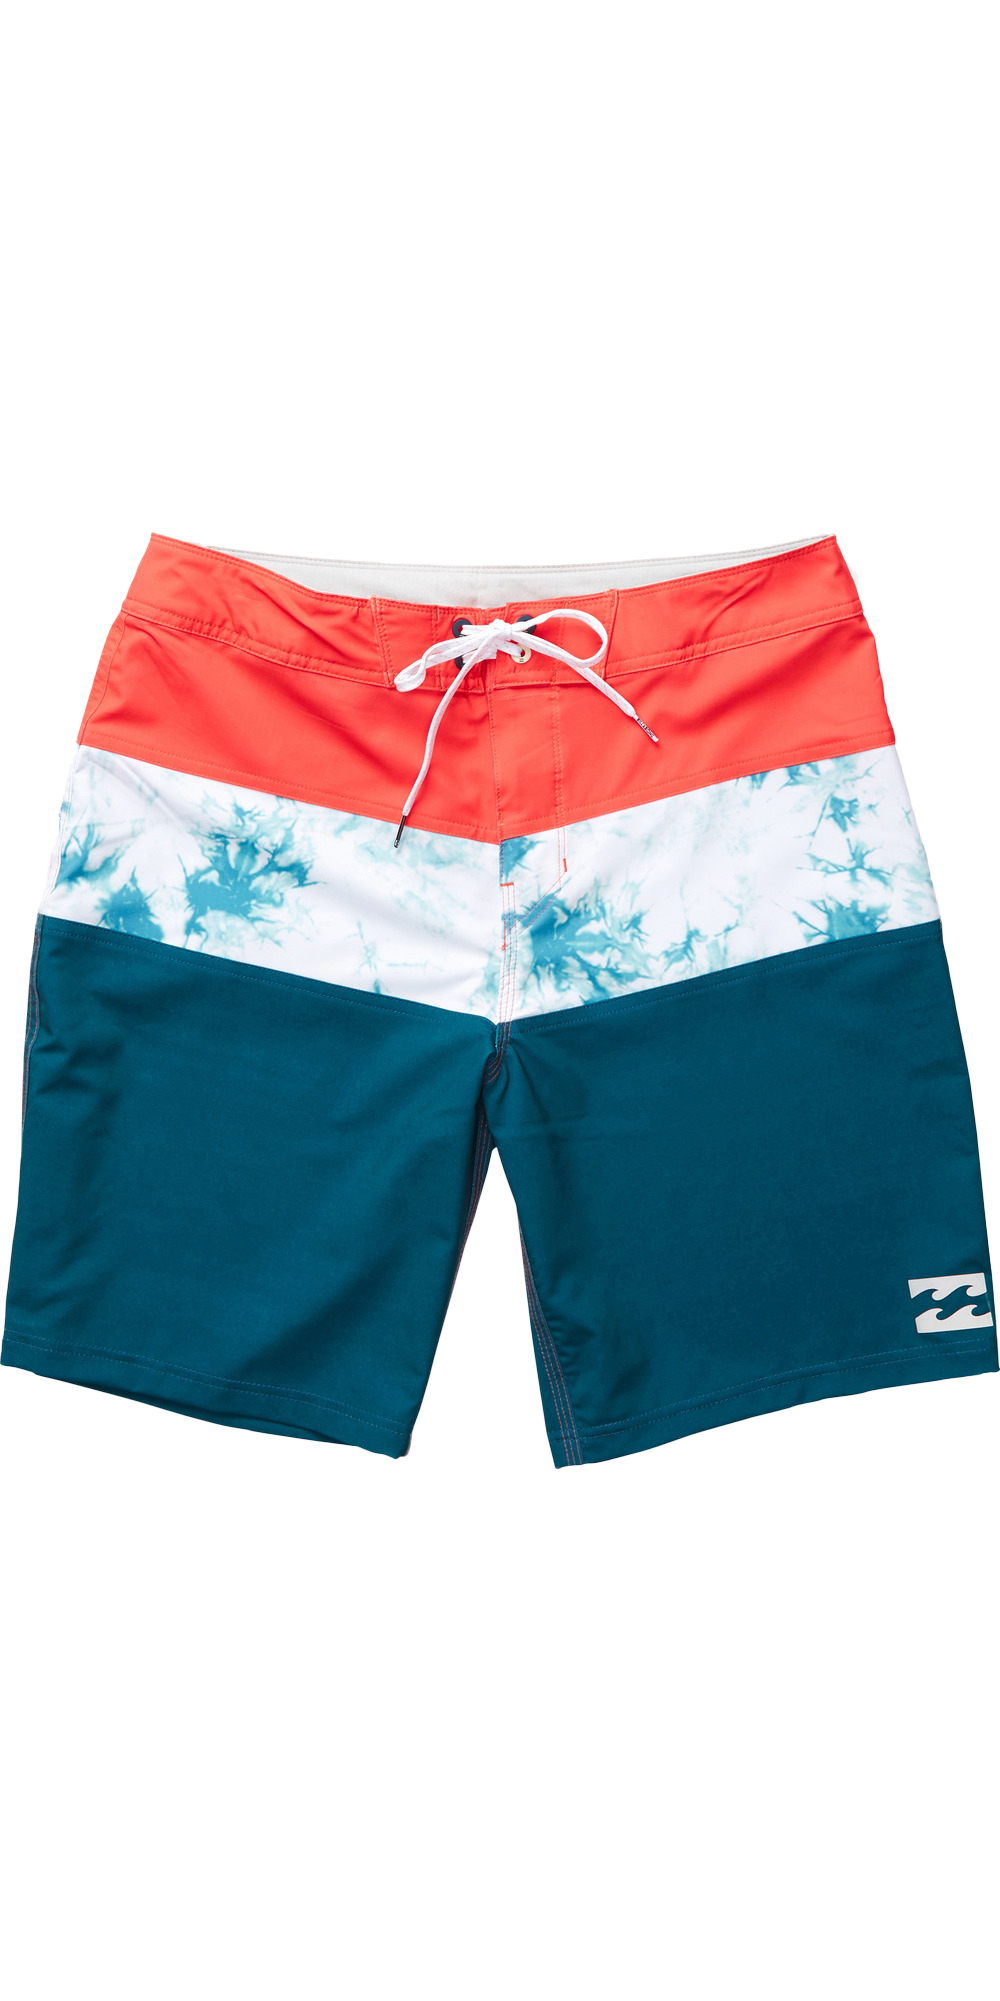 board shorts 2017 billabong tribong x 18 fpcdfbo